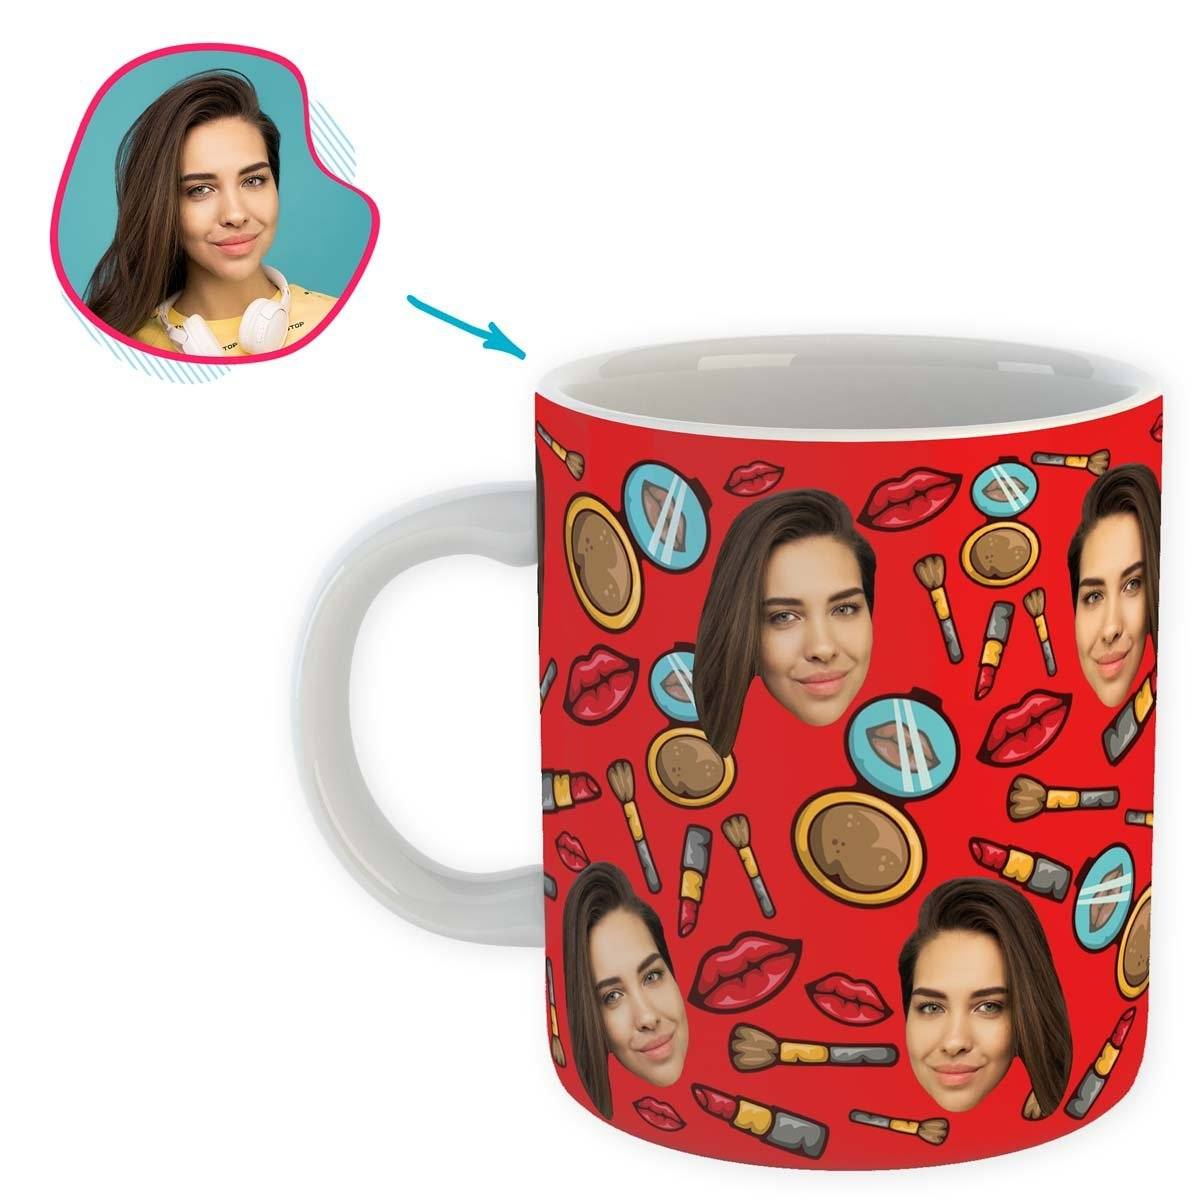 Red Makeup personalized mug with photo of face printed on it